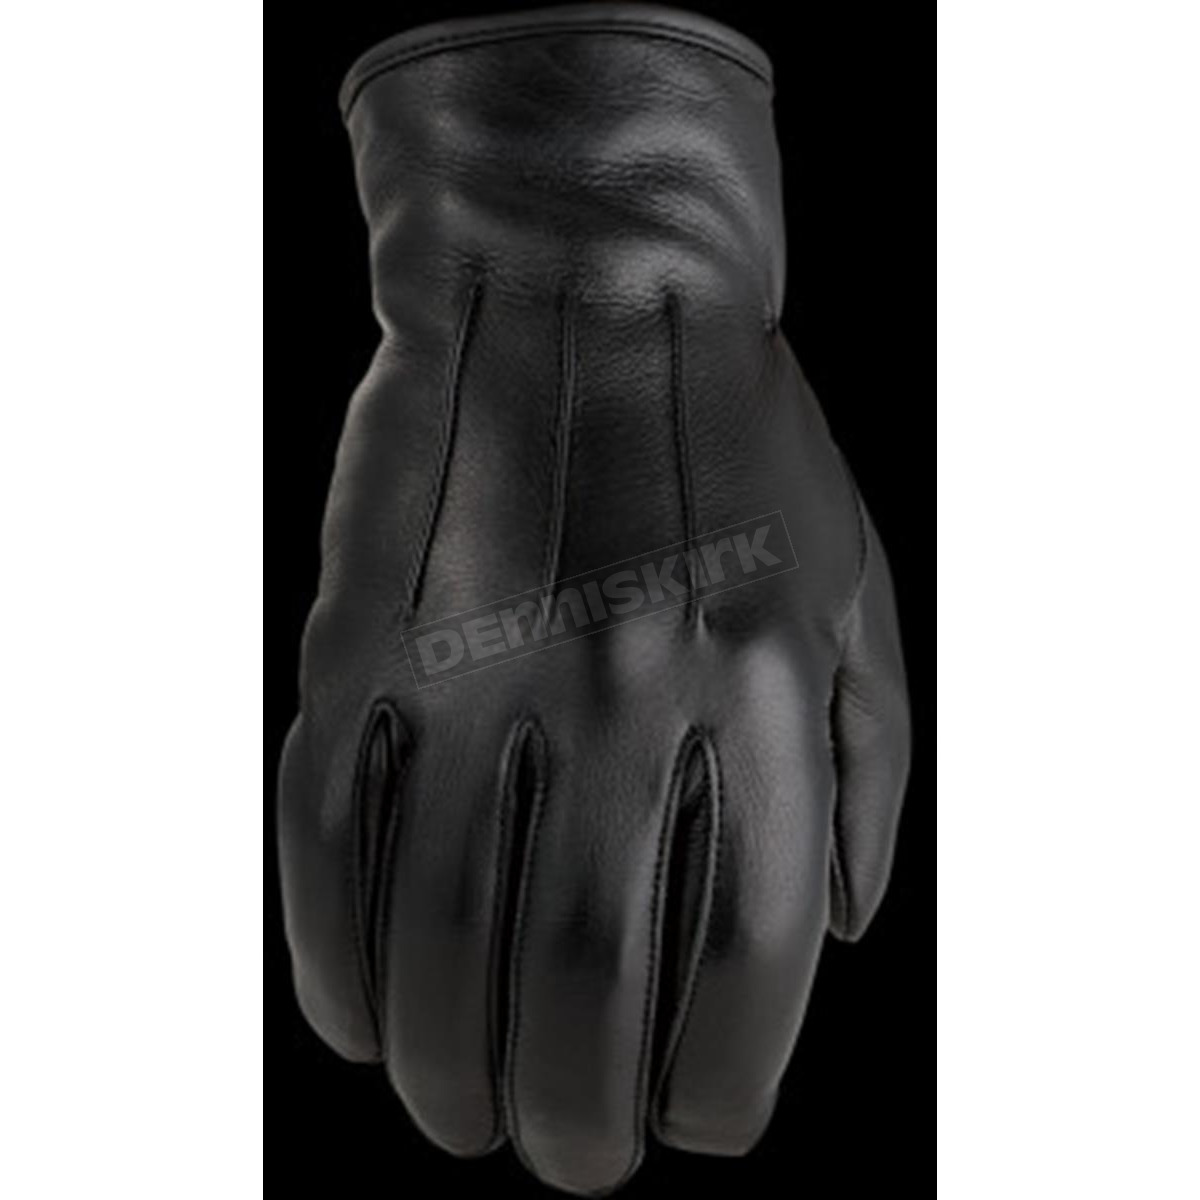 Z1R 938 Leather Motorcycle Gloves